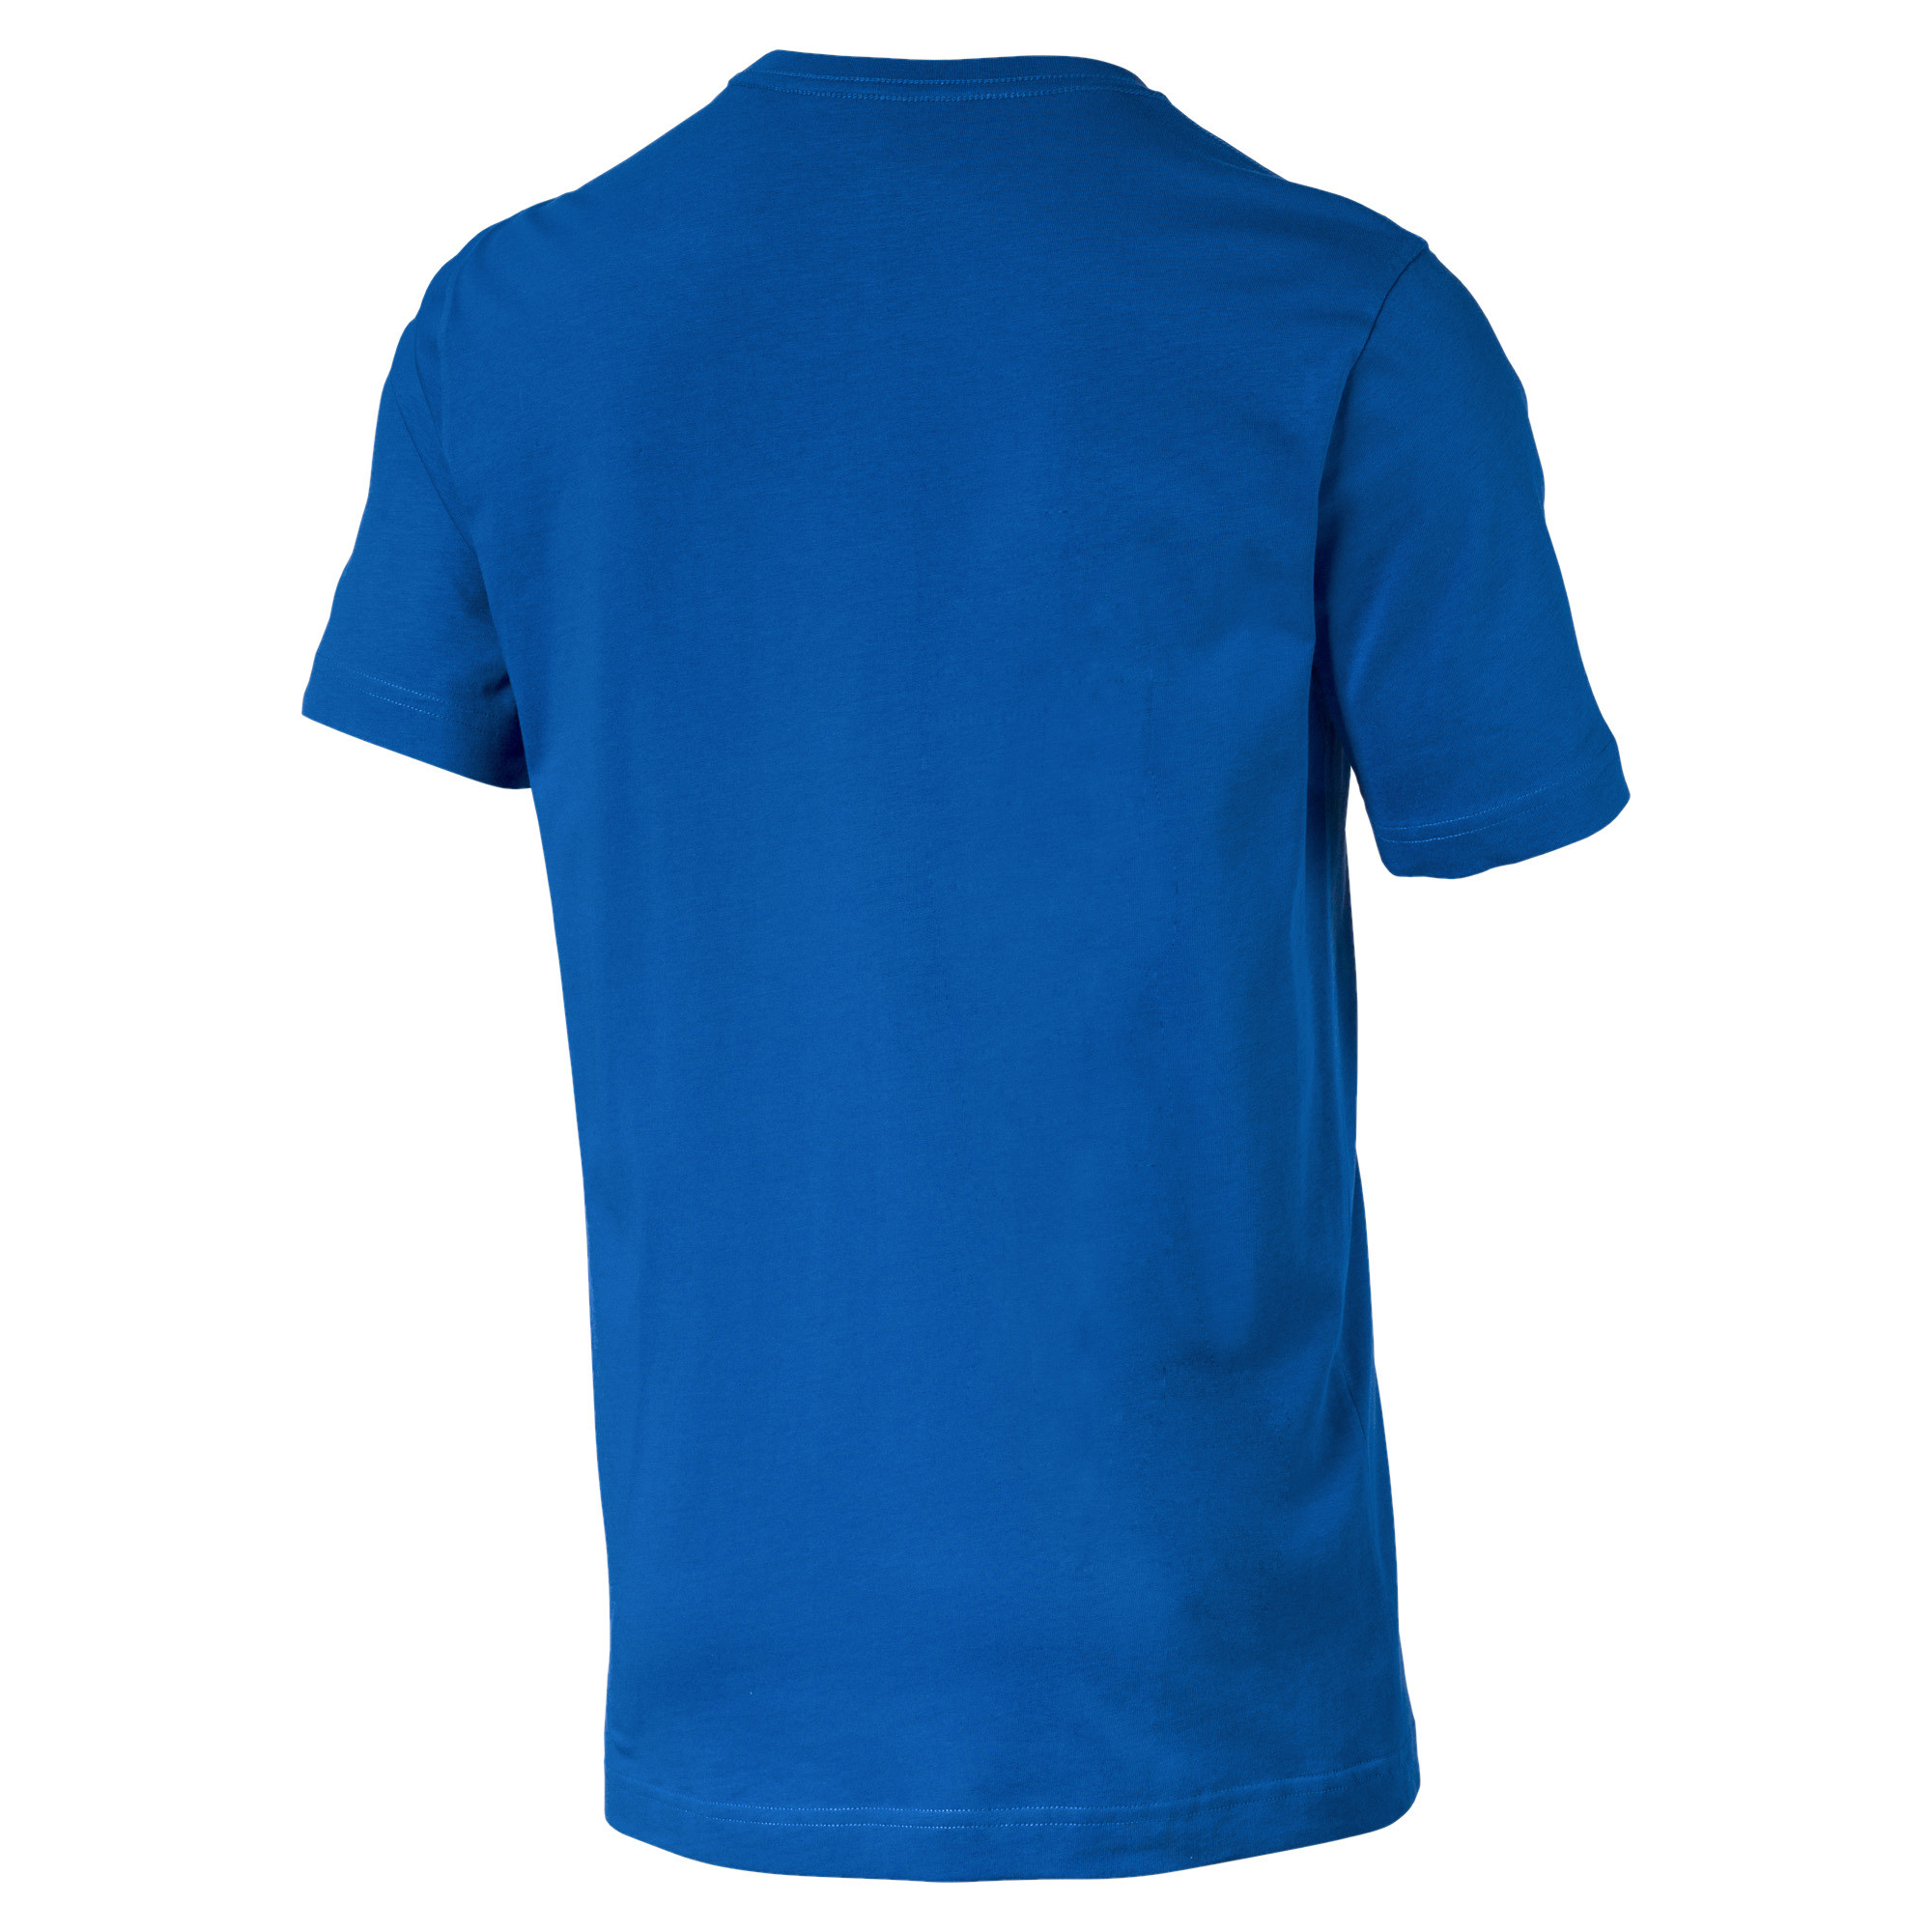 PUMA-Essentials-Men-039-s-Tee-Men-Tee-Basics thumbnail 3